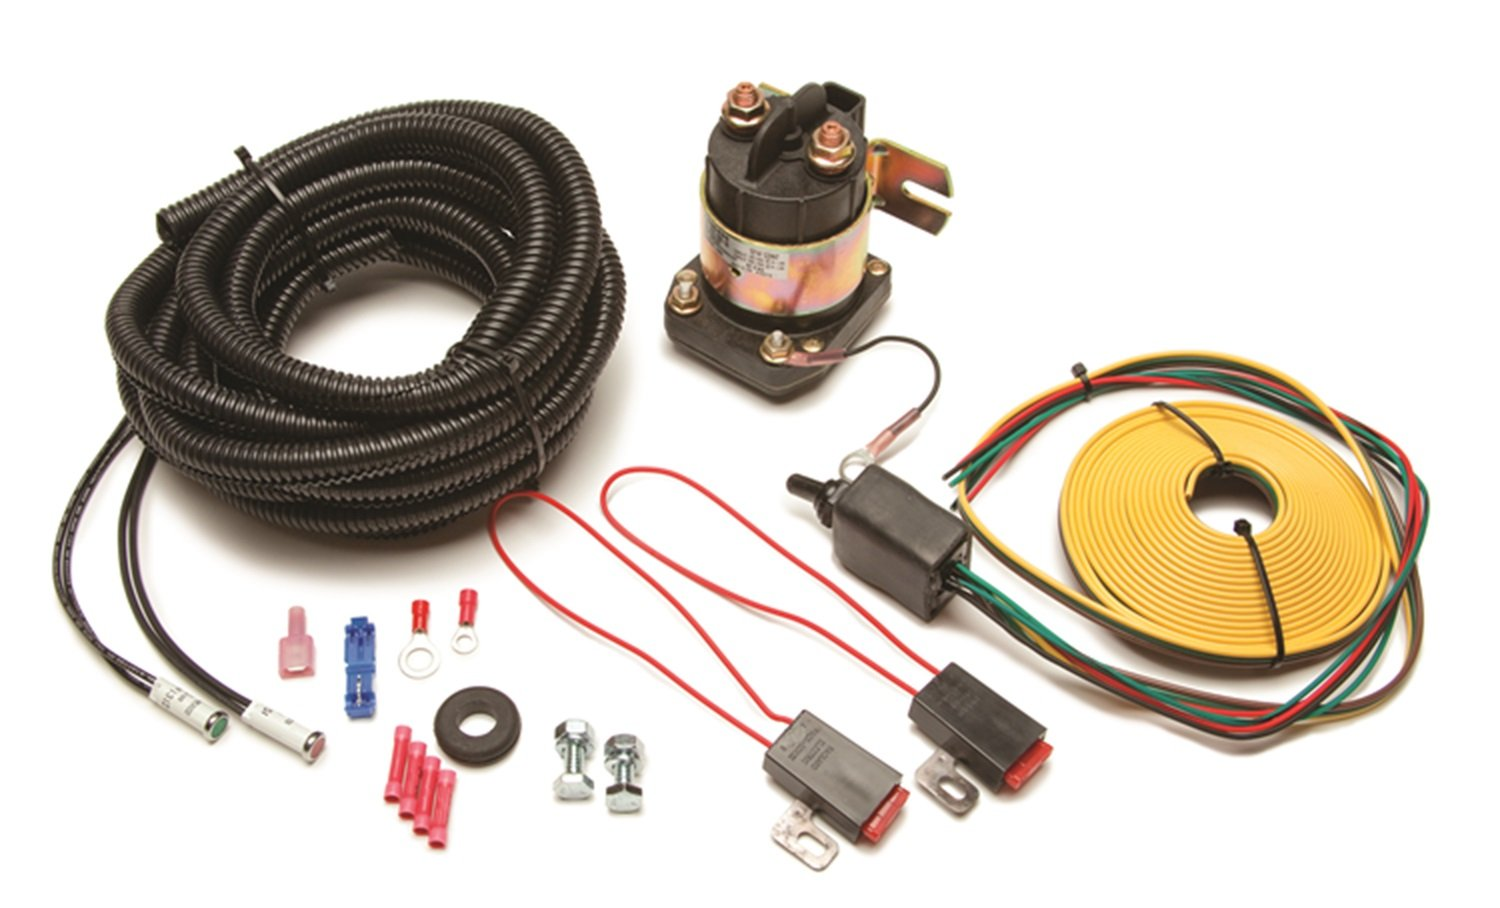 Painless 40102 250 Amp Dual Battery Current Control Performance Wiring System 1 Pack Automotive